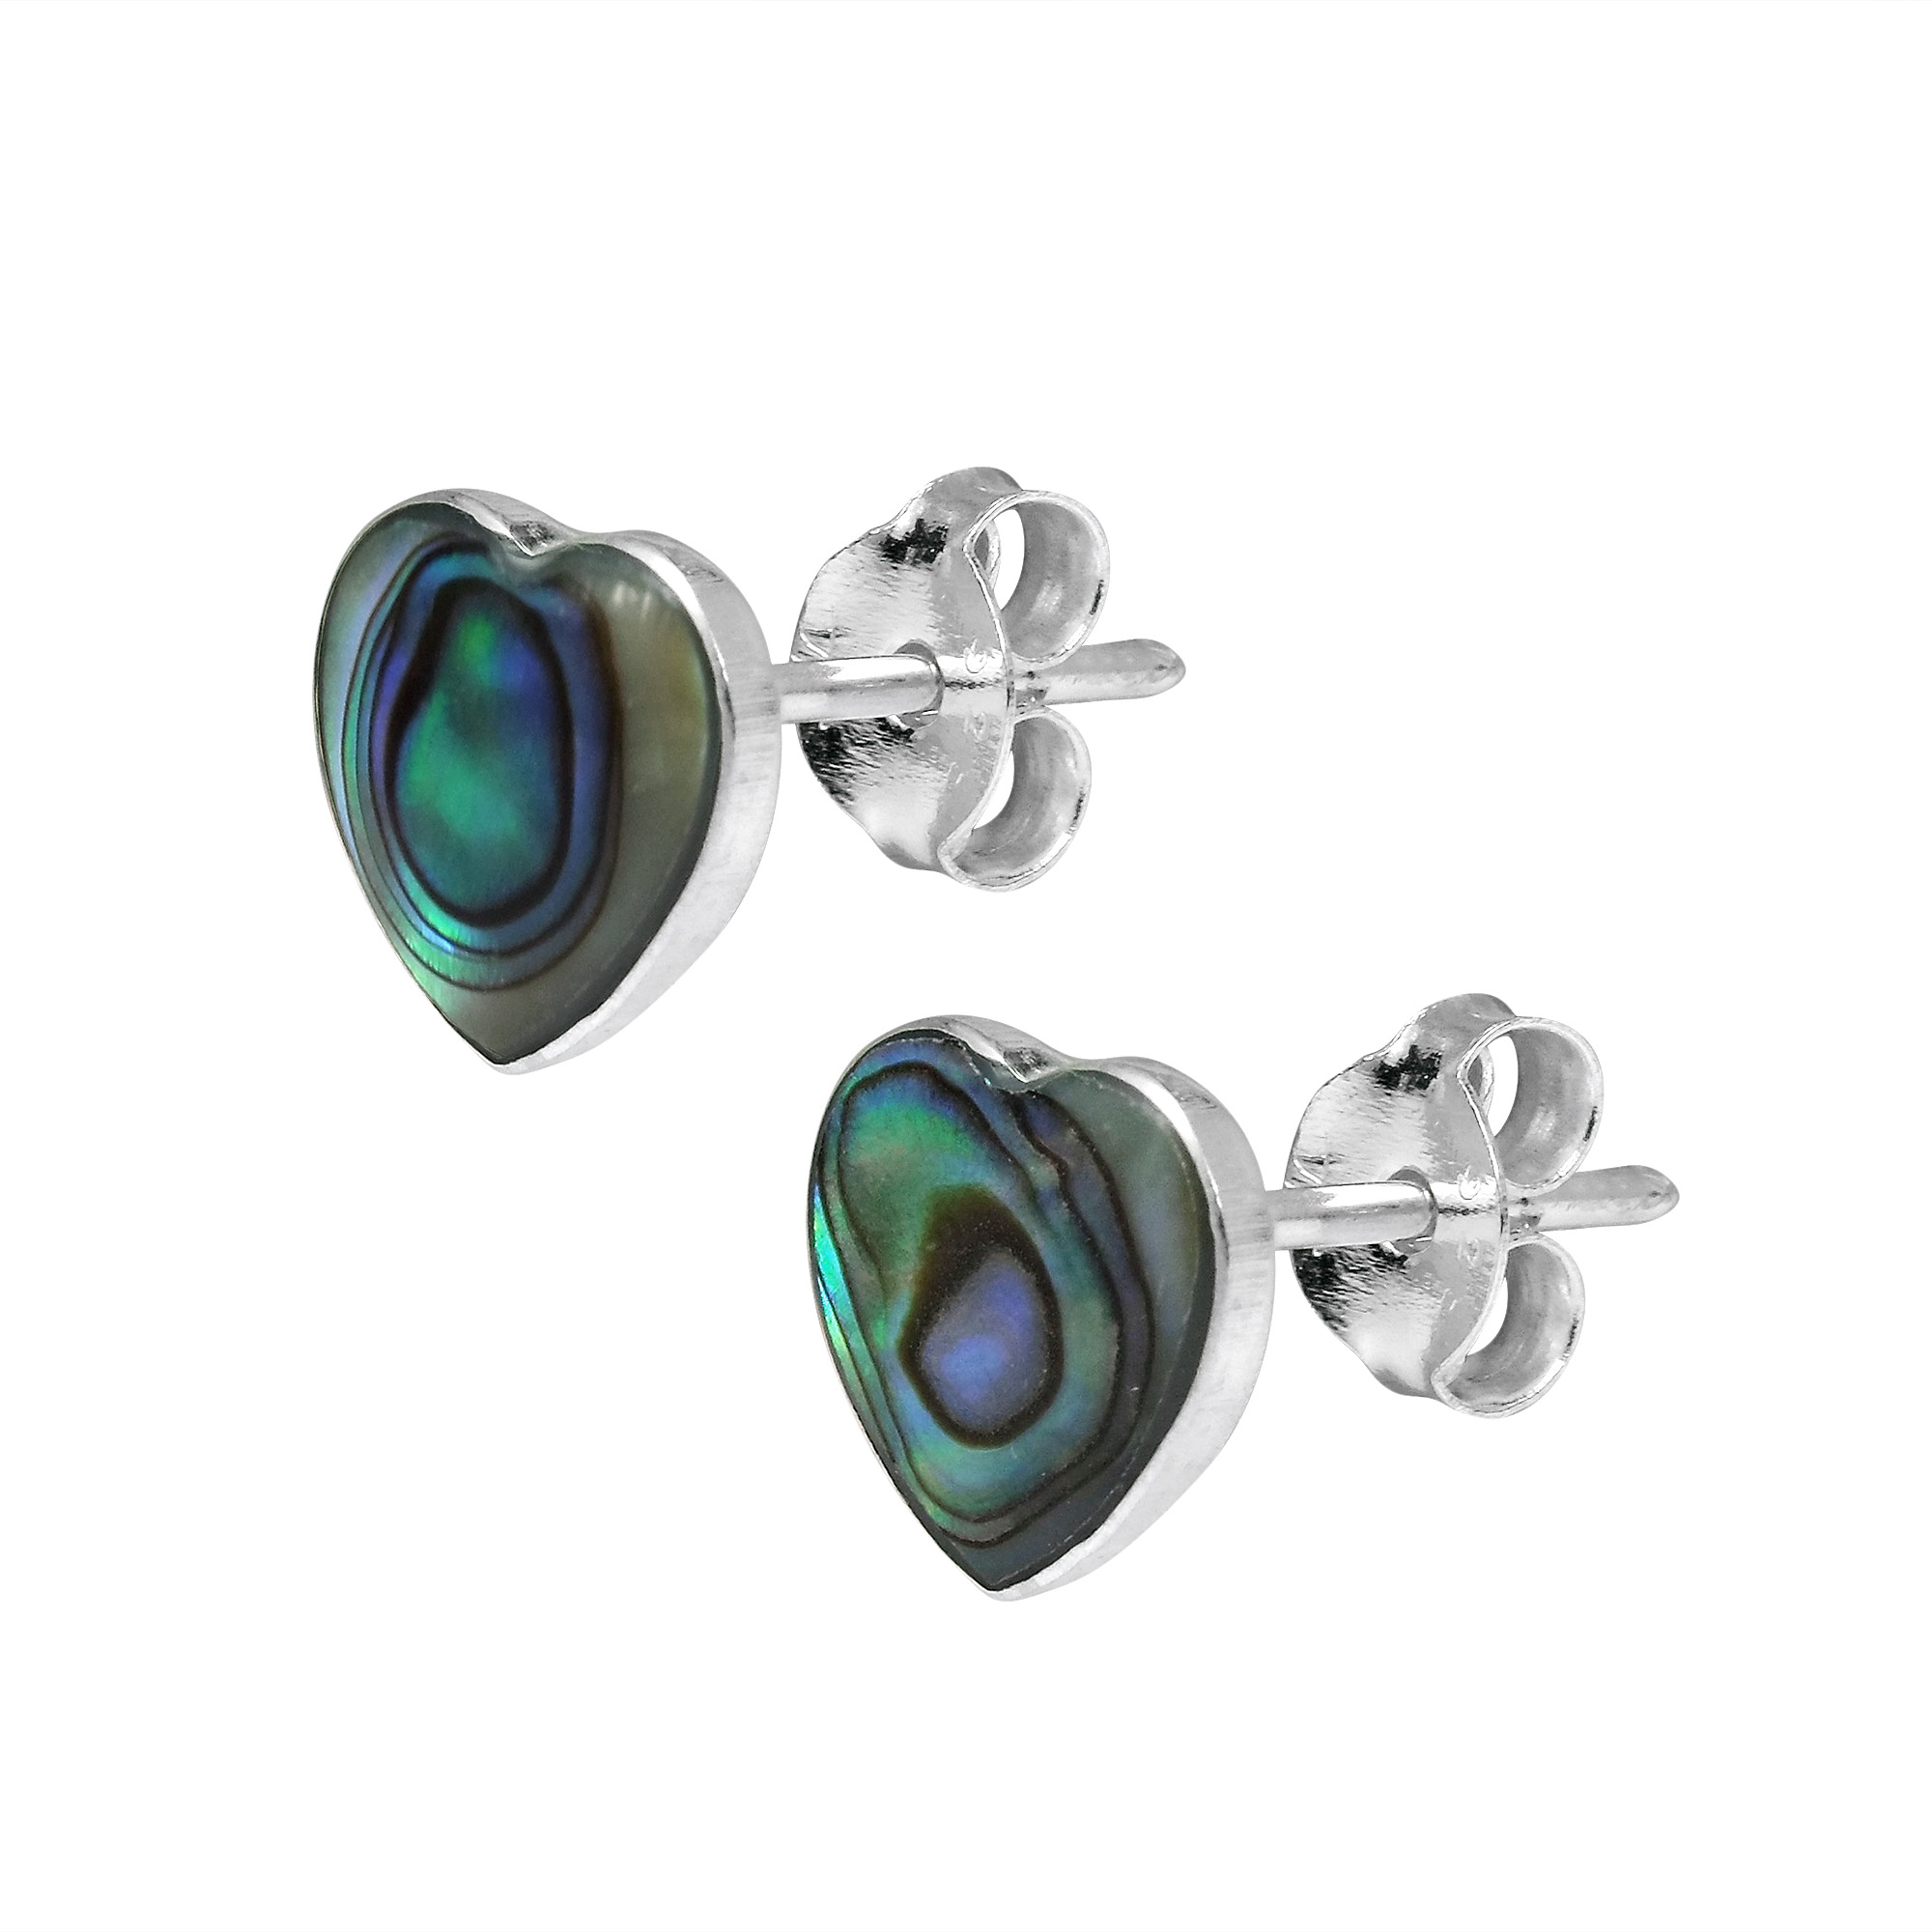 kendra marty scott lyst abalone view shell earrings fullscreen drop jewelry blue in stud